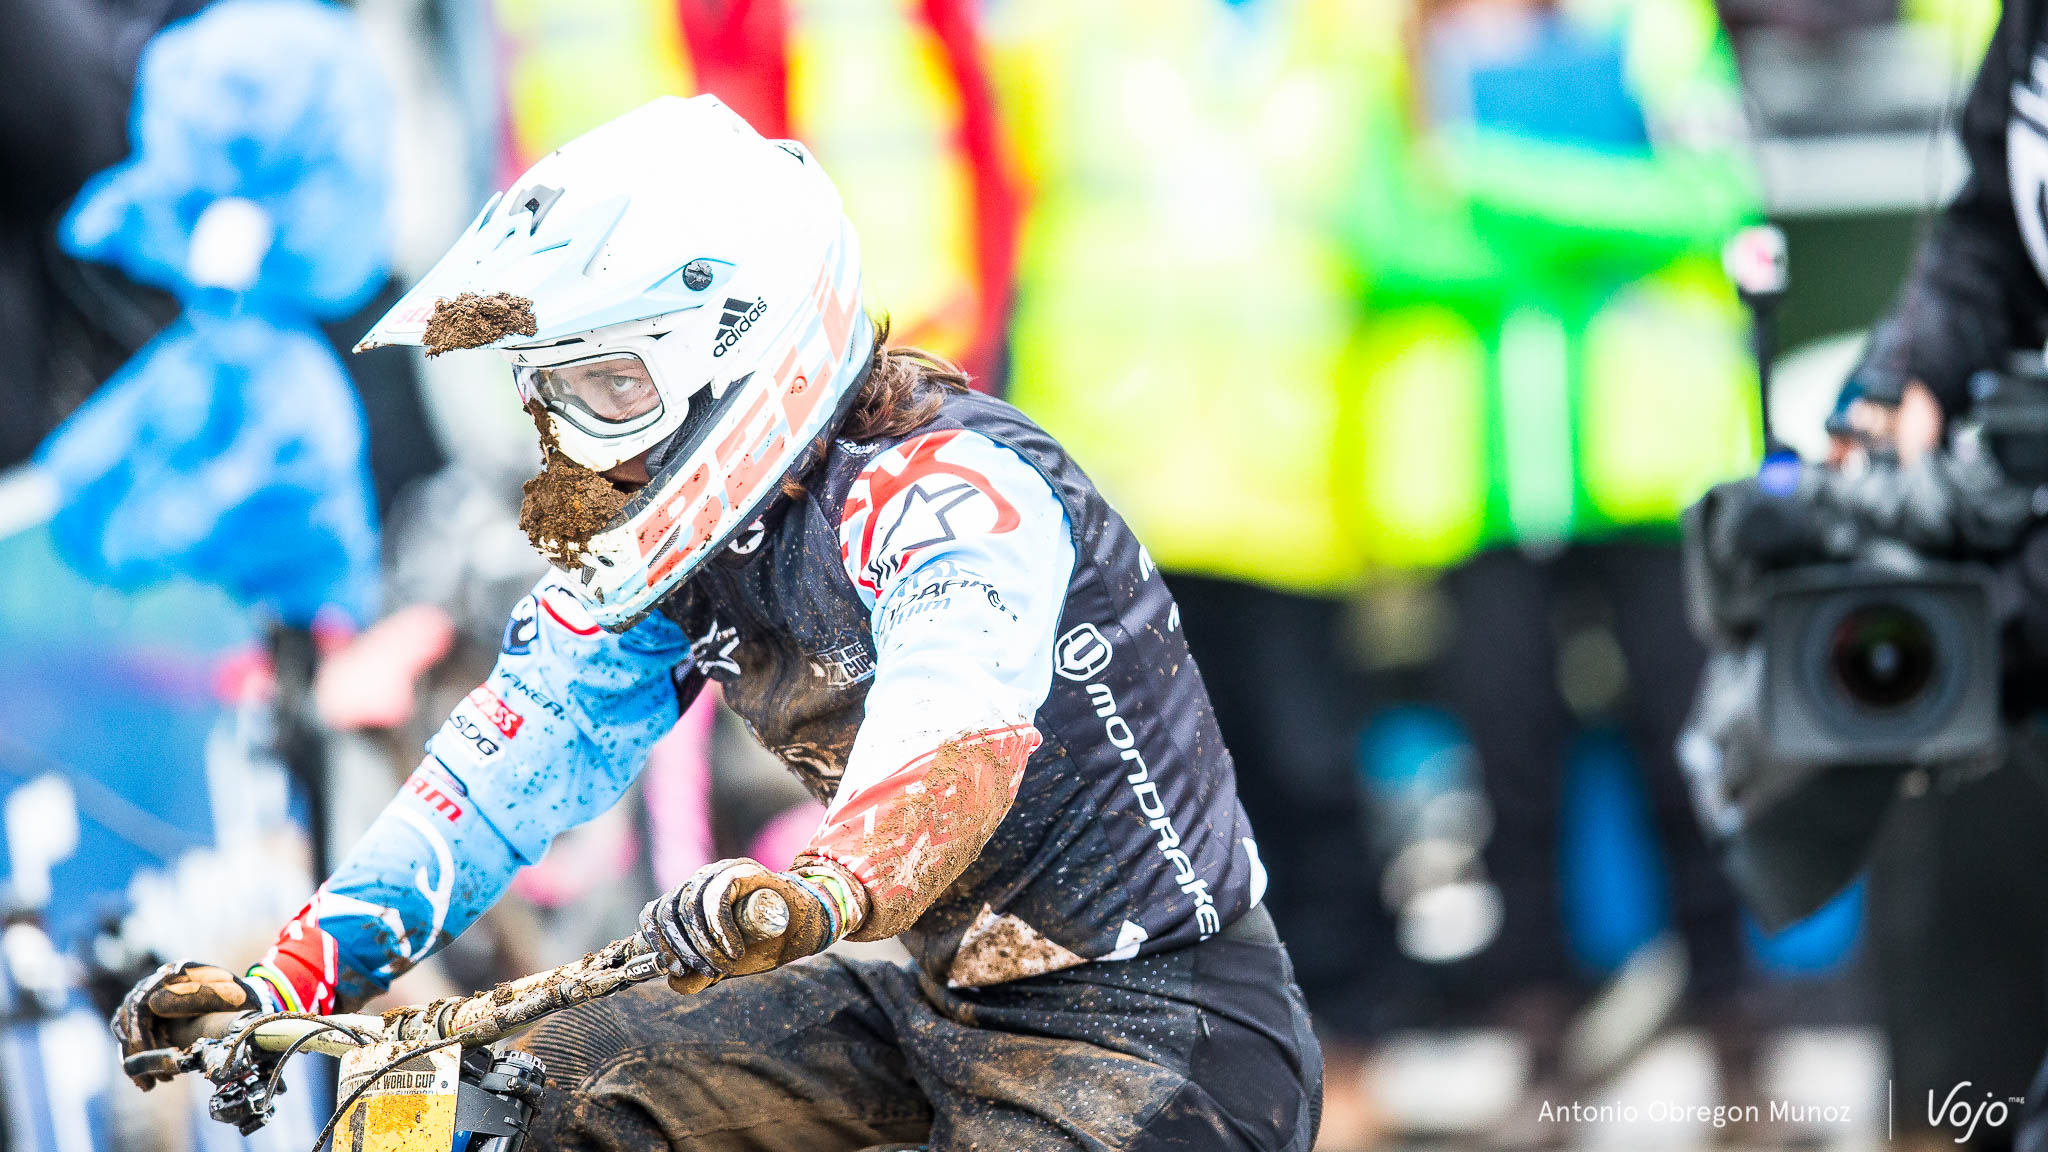 Fort_William_UCI_World_Cup_DH_2015_(finals_Femmes)_(EmmelineRagot)_Copyright_Antonio_Obregon_VojoMag-5